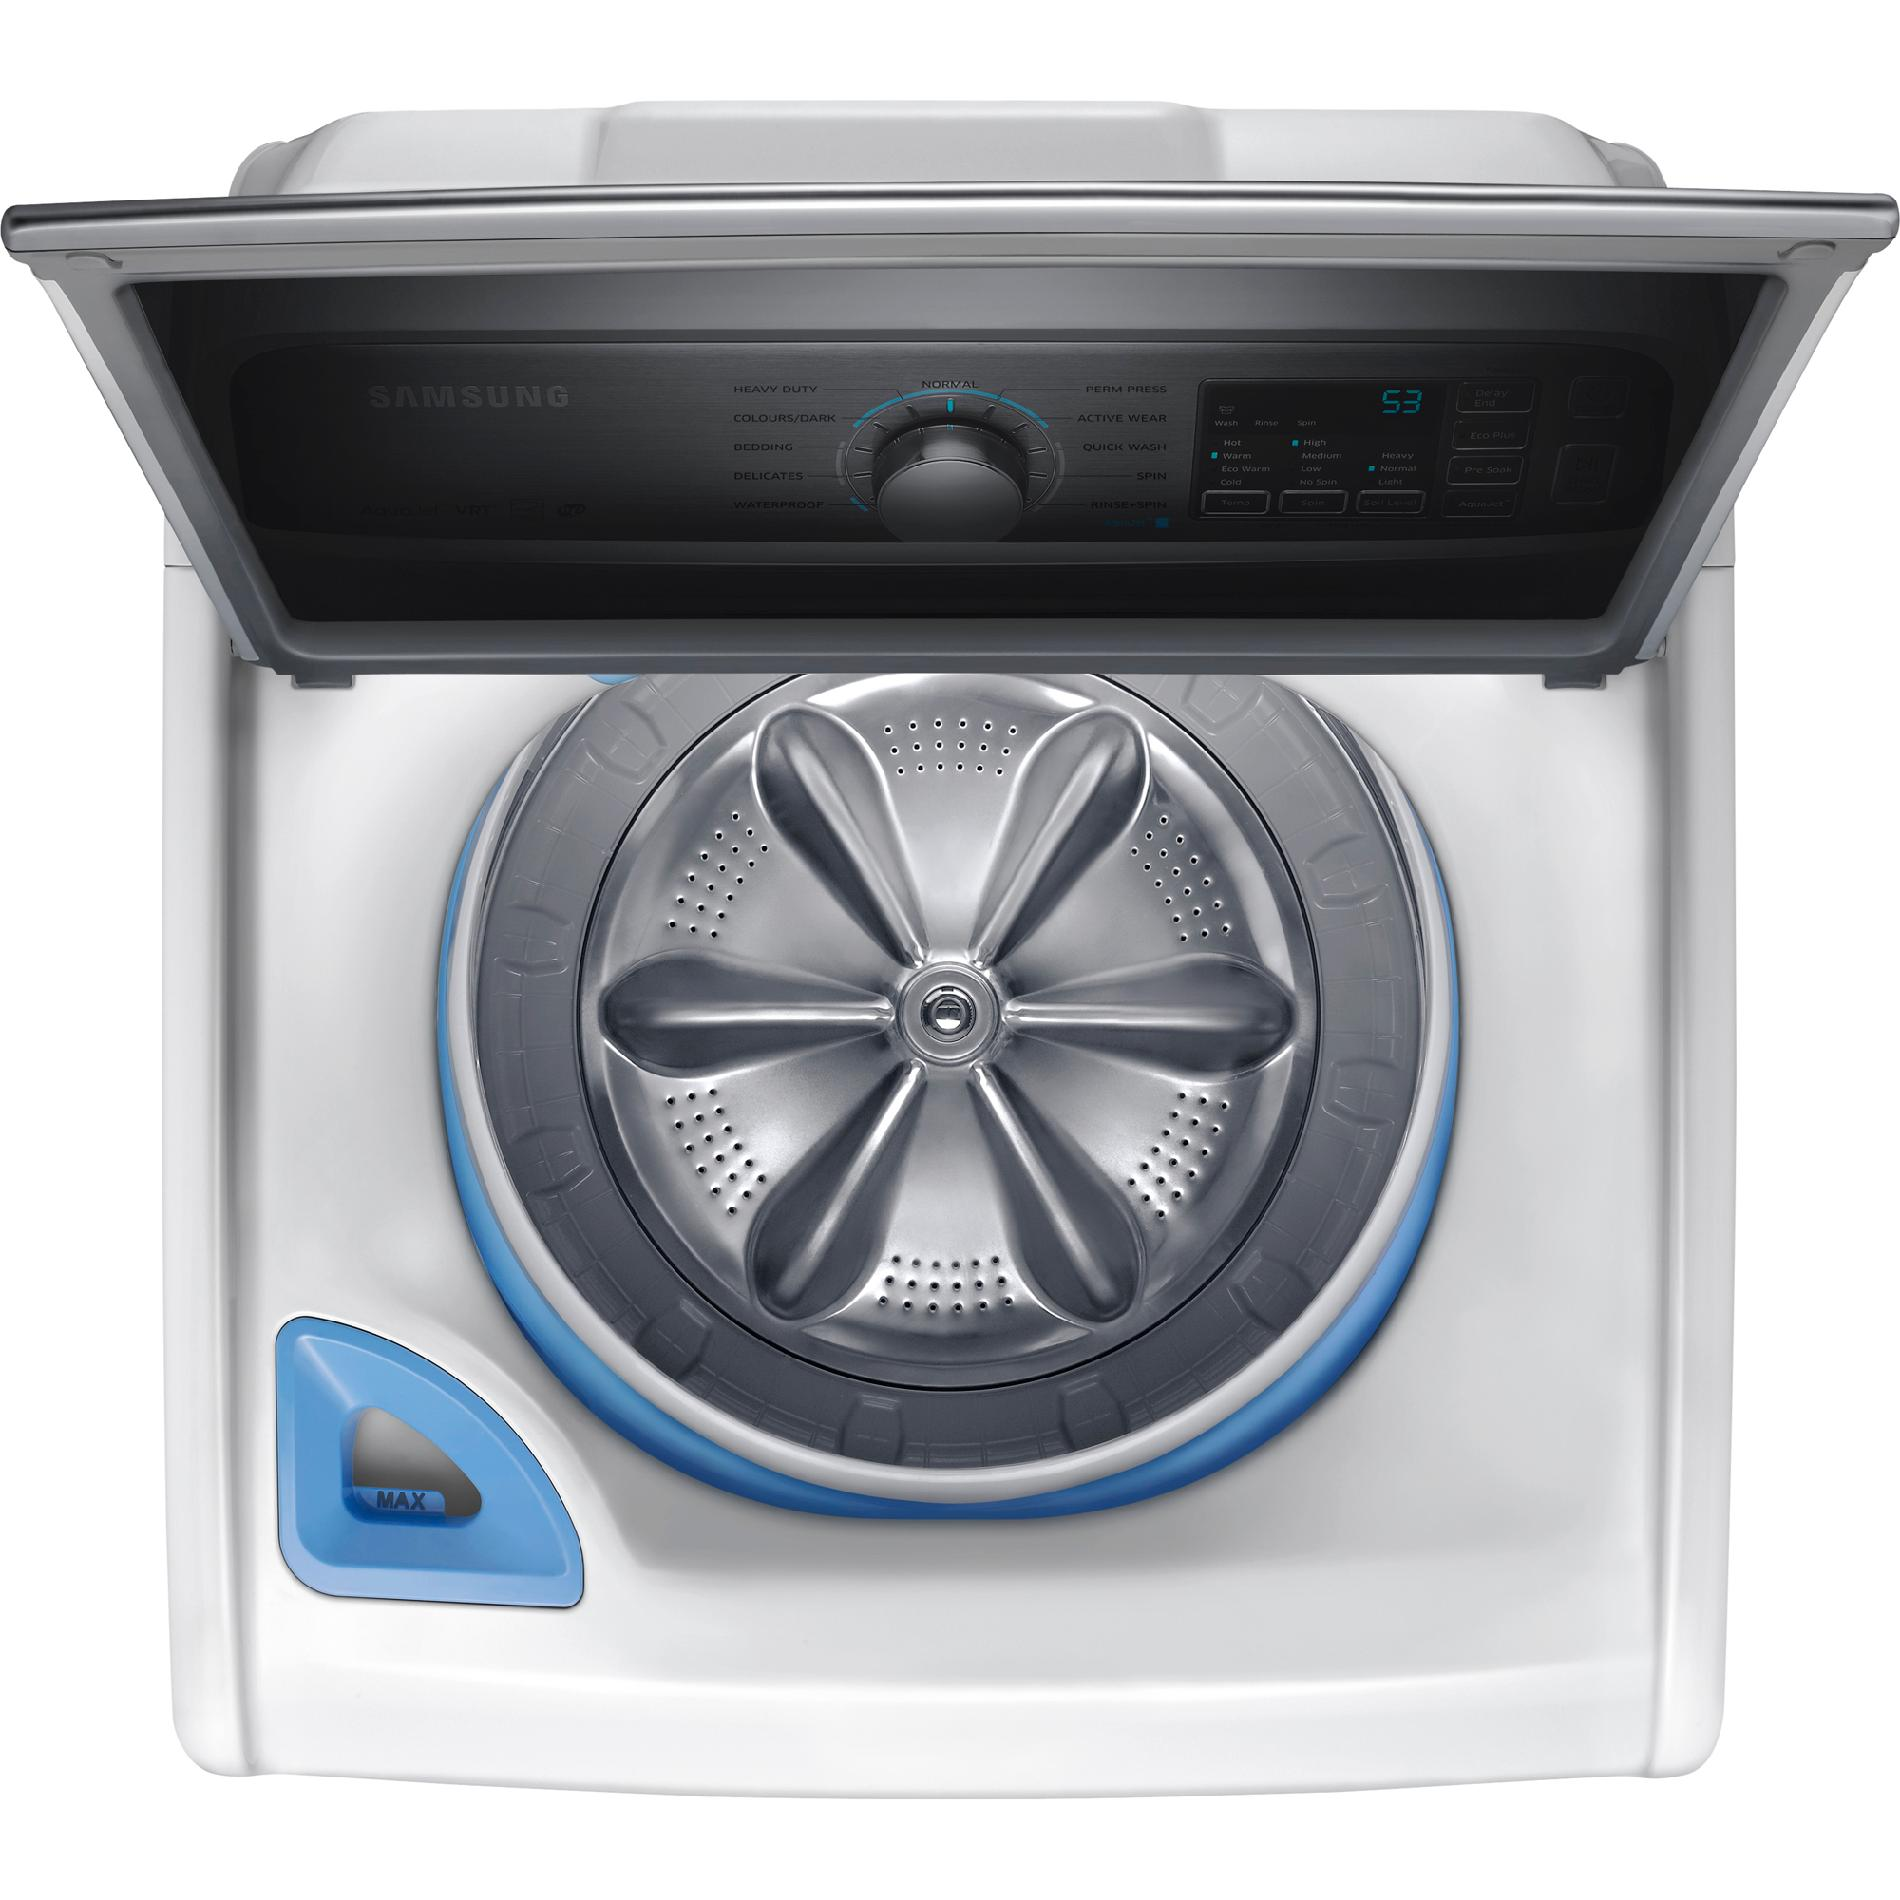 Samsung 4.8 cu. ft. Top-Load Washer - White